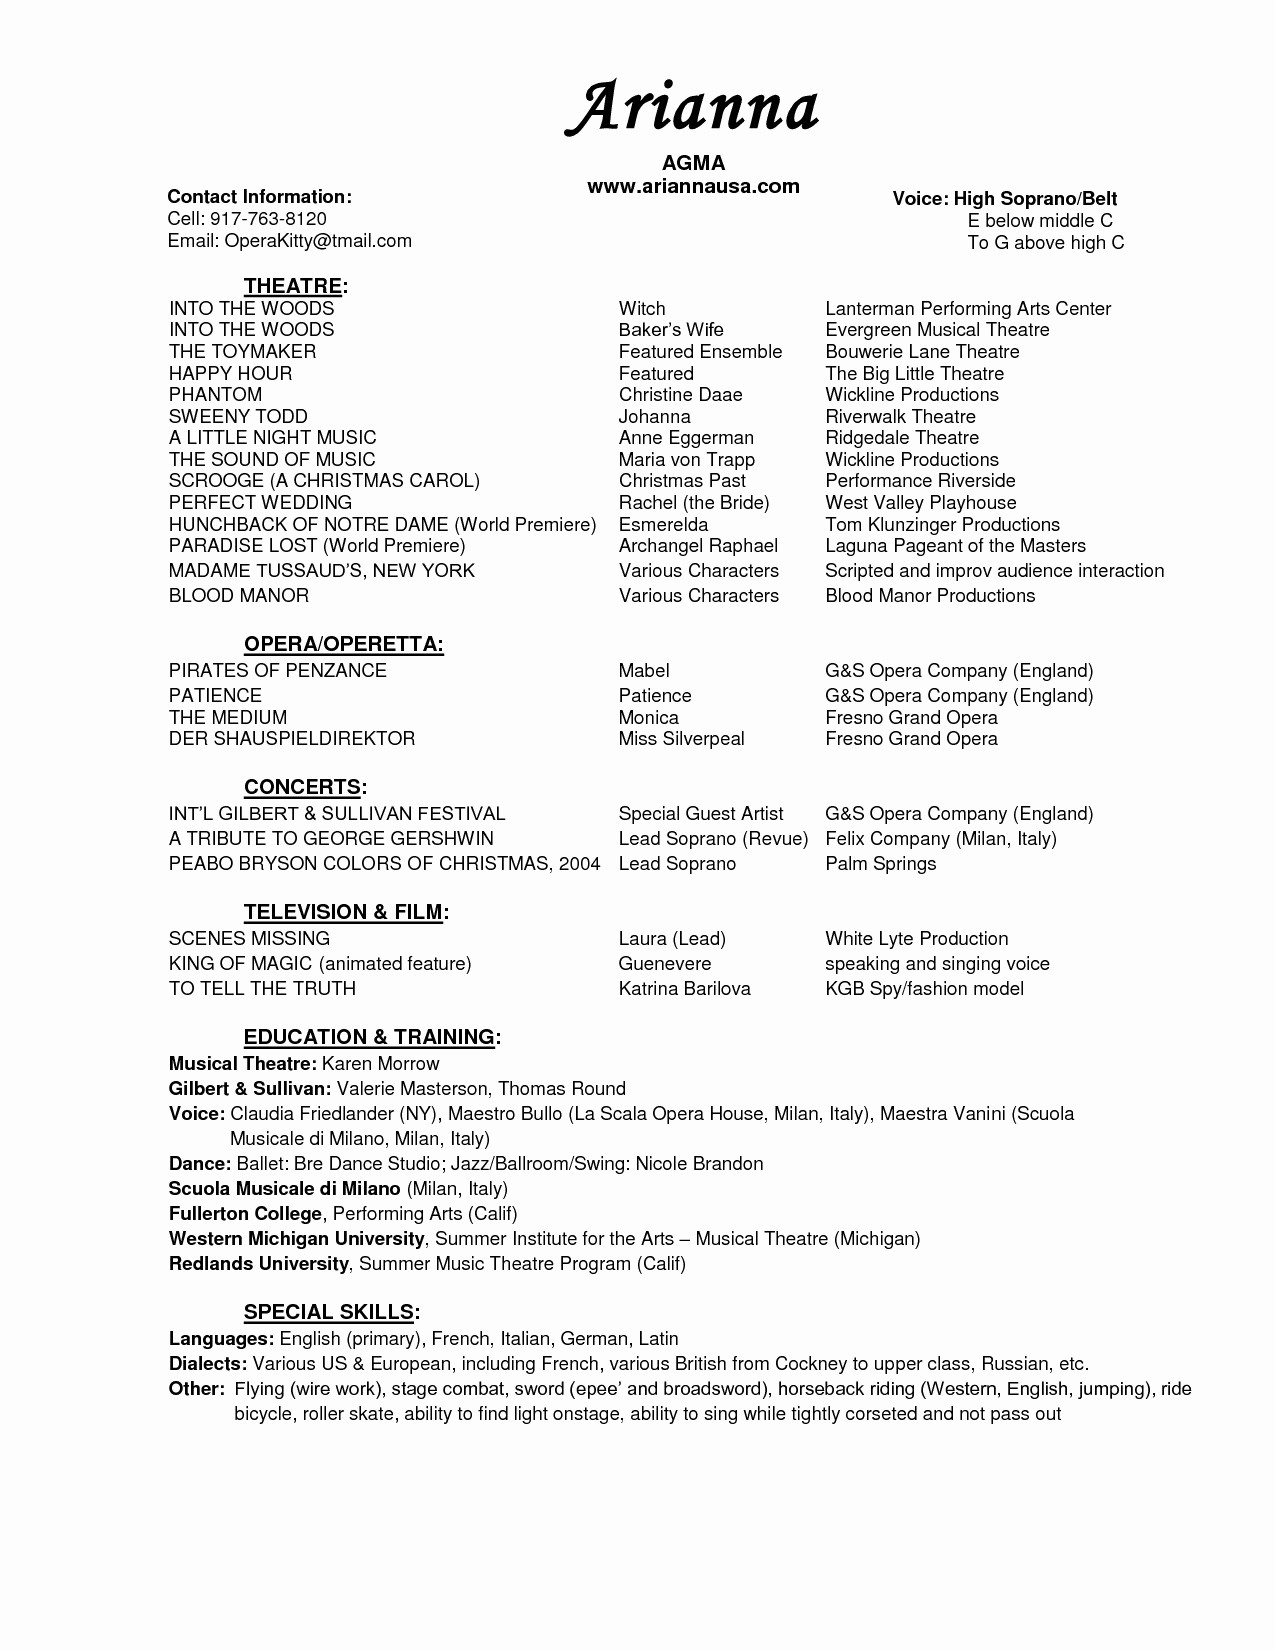 musical theatre resume example-Musicians Resume Template Save Musical Theatre Resume Template Unique Resume Music 0d Wallpapers 49 1-q